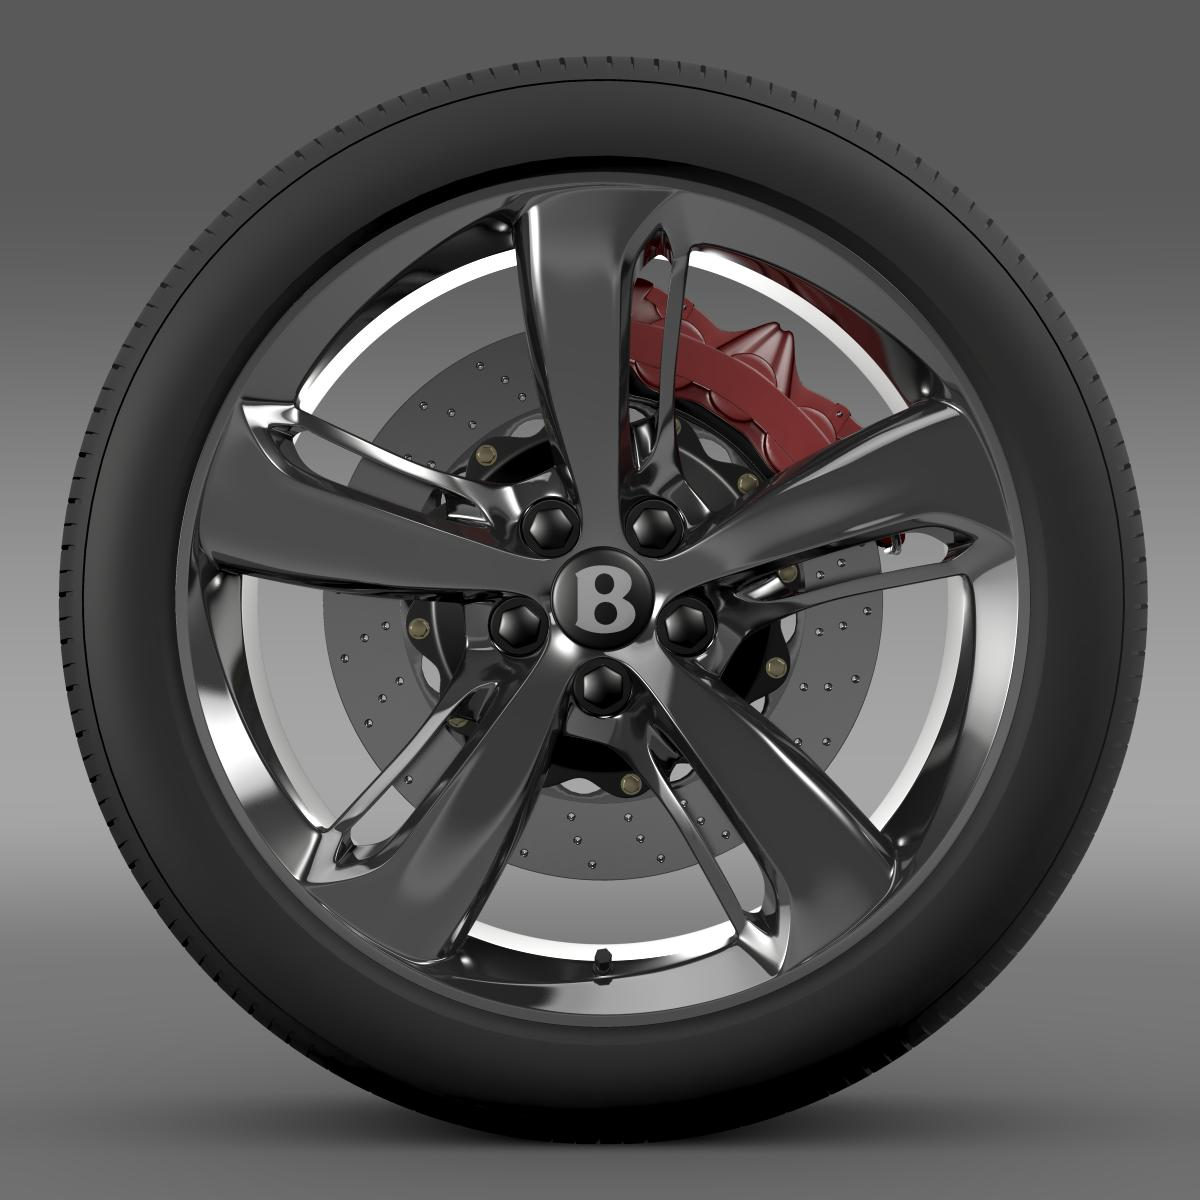 bentley continental gt speed 2015 wheel 3d model 3ds max fbx c4d lwo ma mb hrc xsi obj 210580